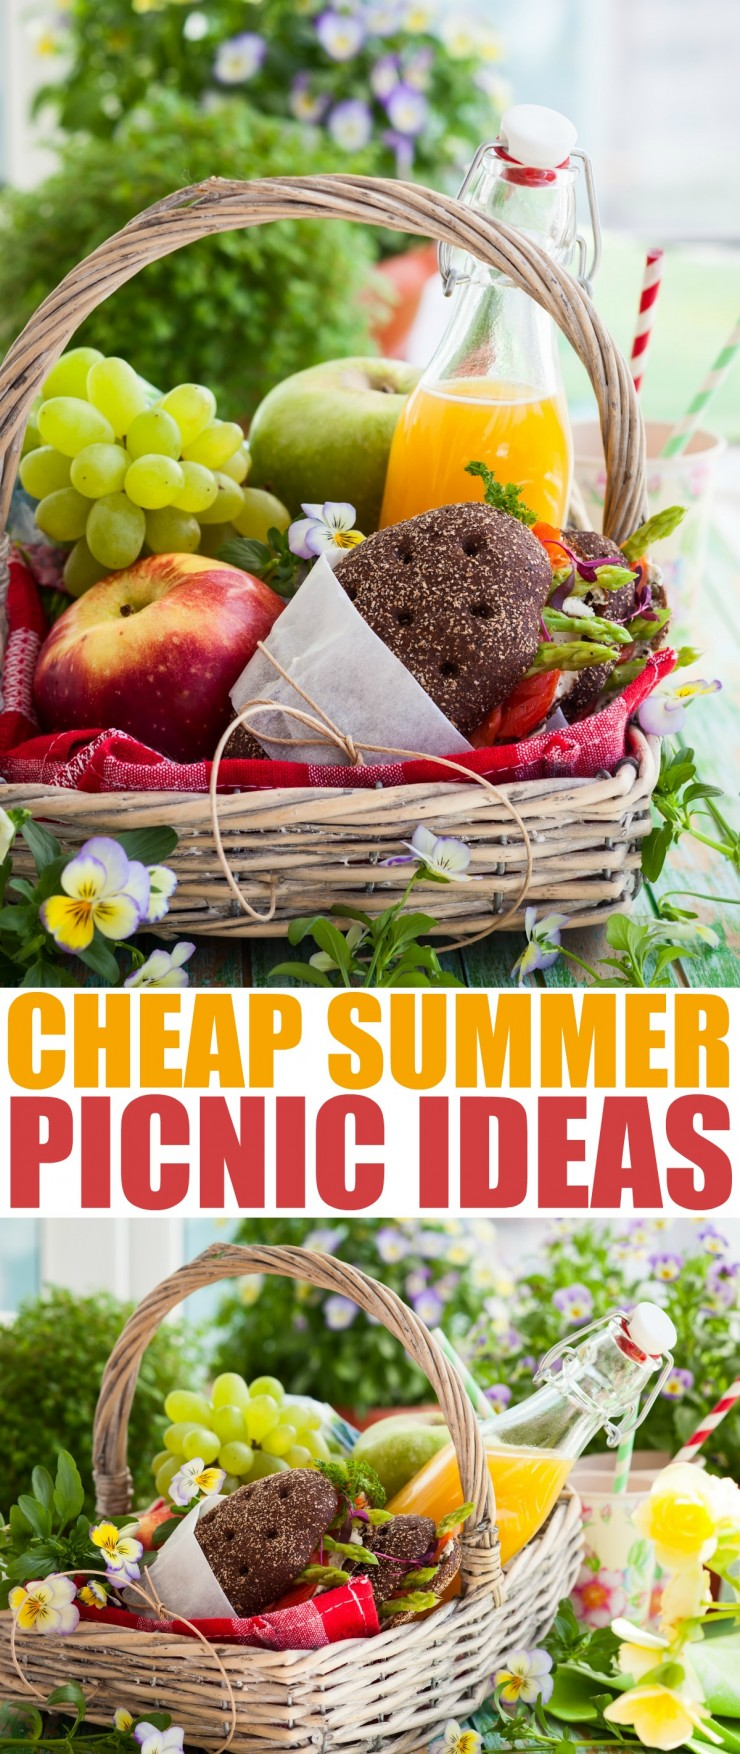 Picnics can be an affordable and simple way to bring people together for some fun in the sun, but if you don't plan carefully, the costs can add up.